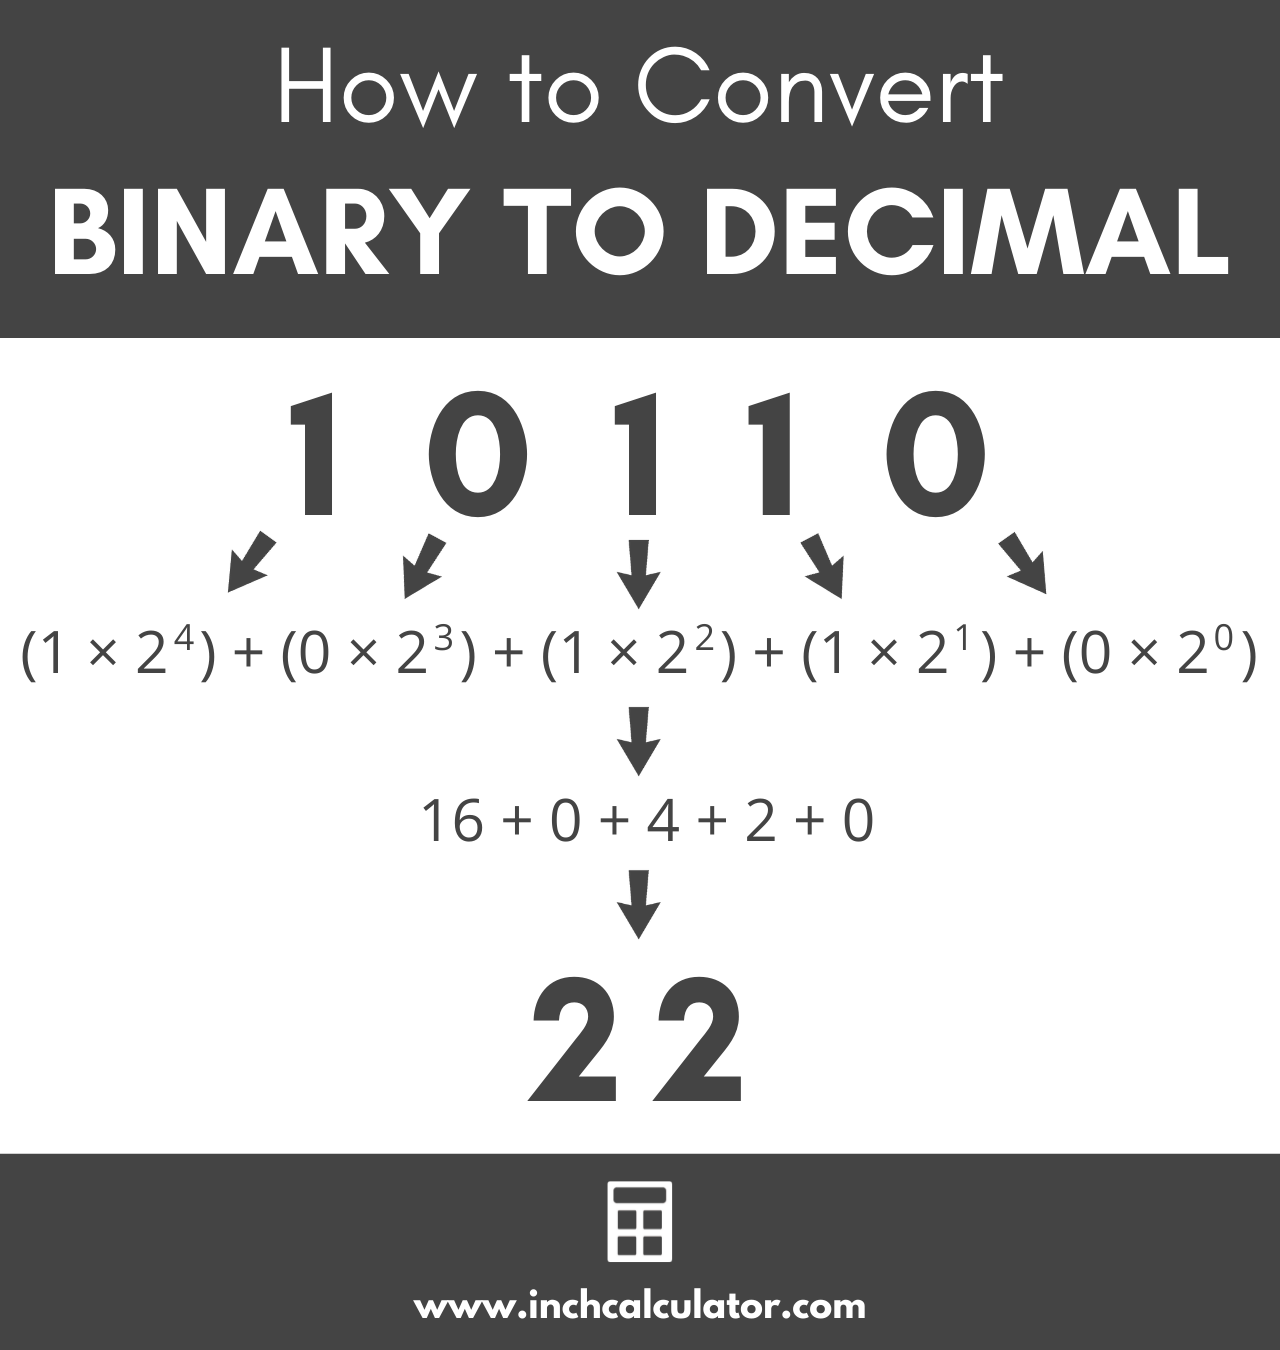 graphic showing how to convert a binary number to decimal